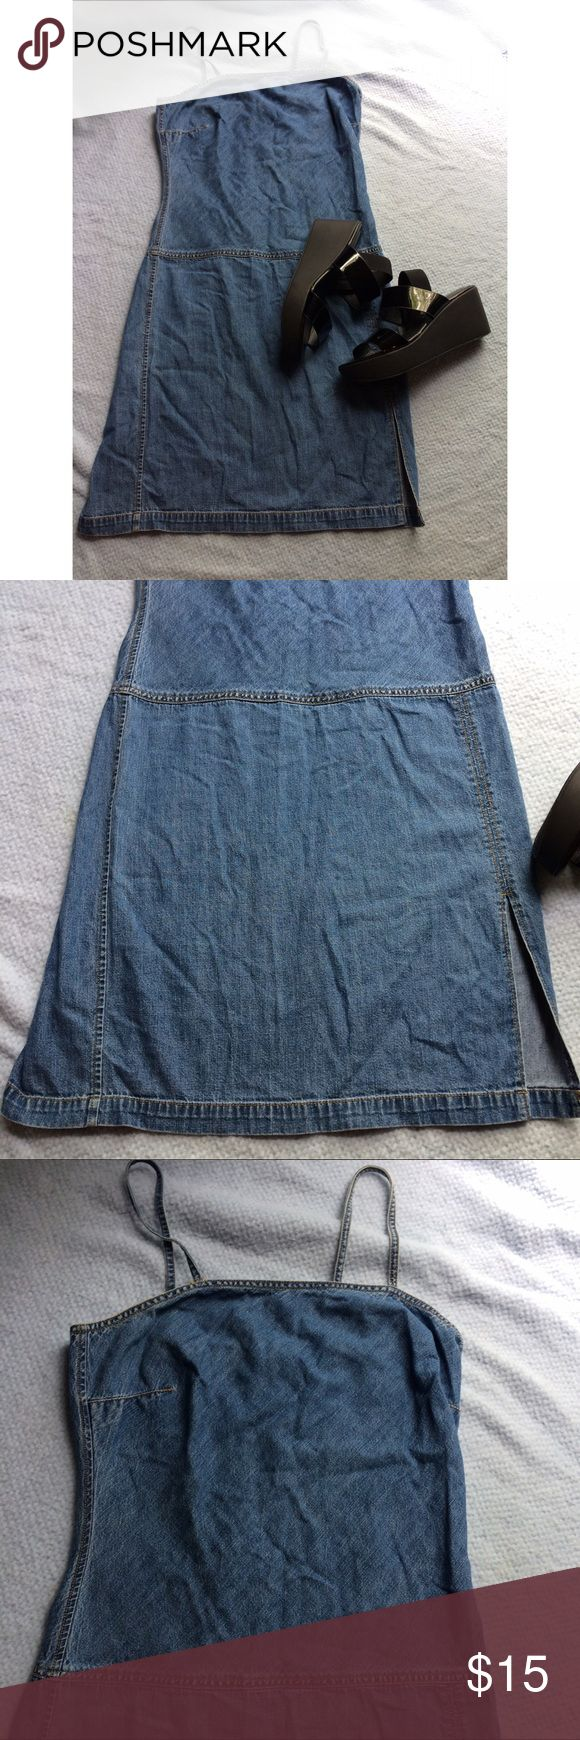 "Vintage Tommy Hilfiger denim dress Very lightweight, and cute for the springtime and summer, has a small 8 inch slit up the left side. And a zipper up the back. It's a size 8. Measurements: bust: 16"" waist : 17.5"" skirt length: 17"" Tommy Hilfiger Dresses Midi"